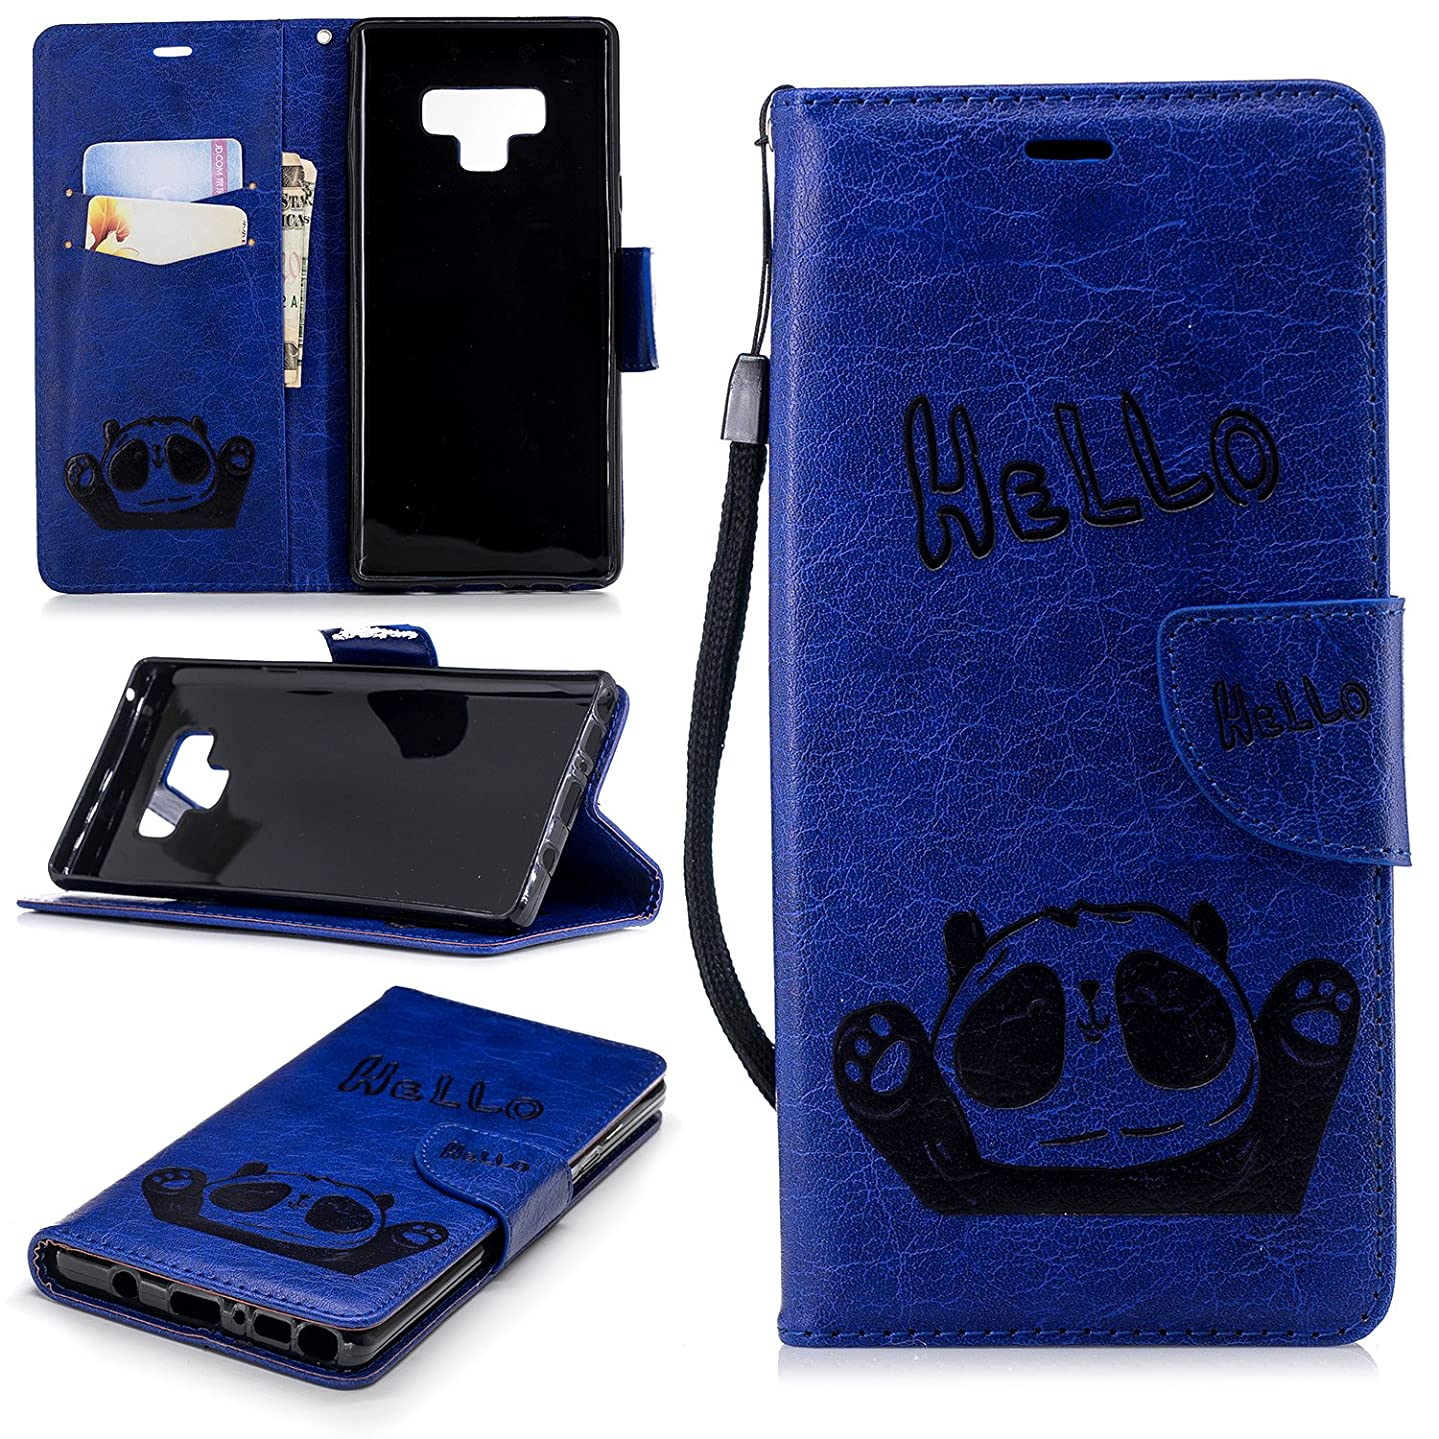 Galaxy Note 9 Case, ZERMU Premium PU Leather Bear Pattern [Wrist Strap] [Kickstand Feature] Flip Folio Leather Wallet Case with ID and Credit Card Pockets for Samsung Galaxy Note 9 6.4